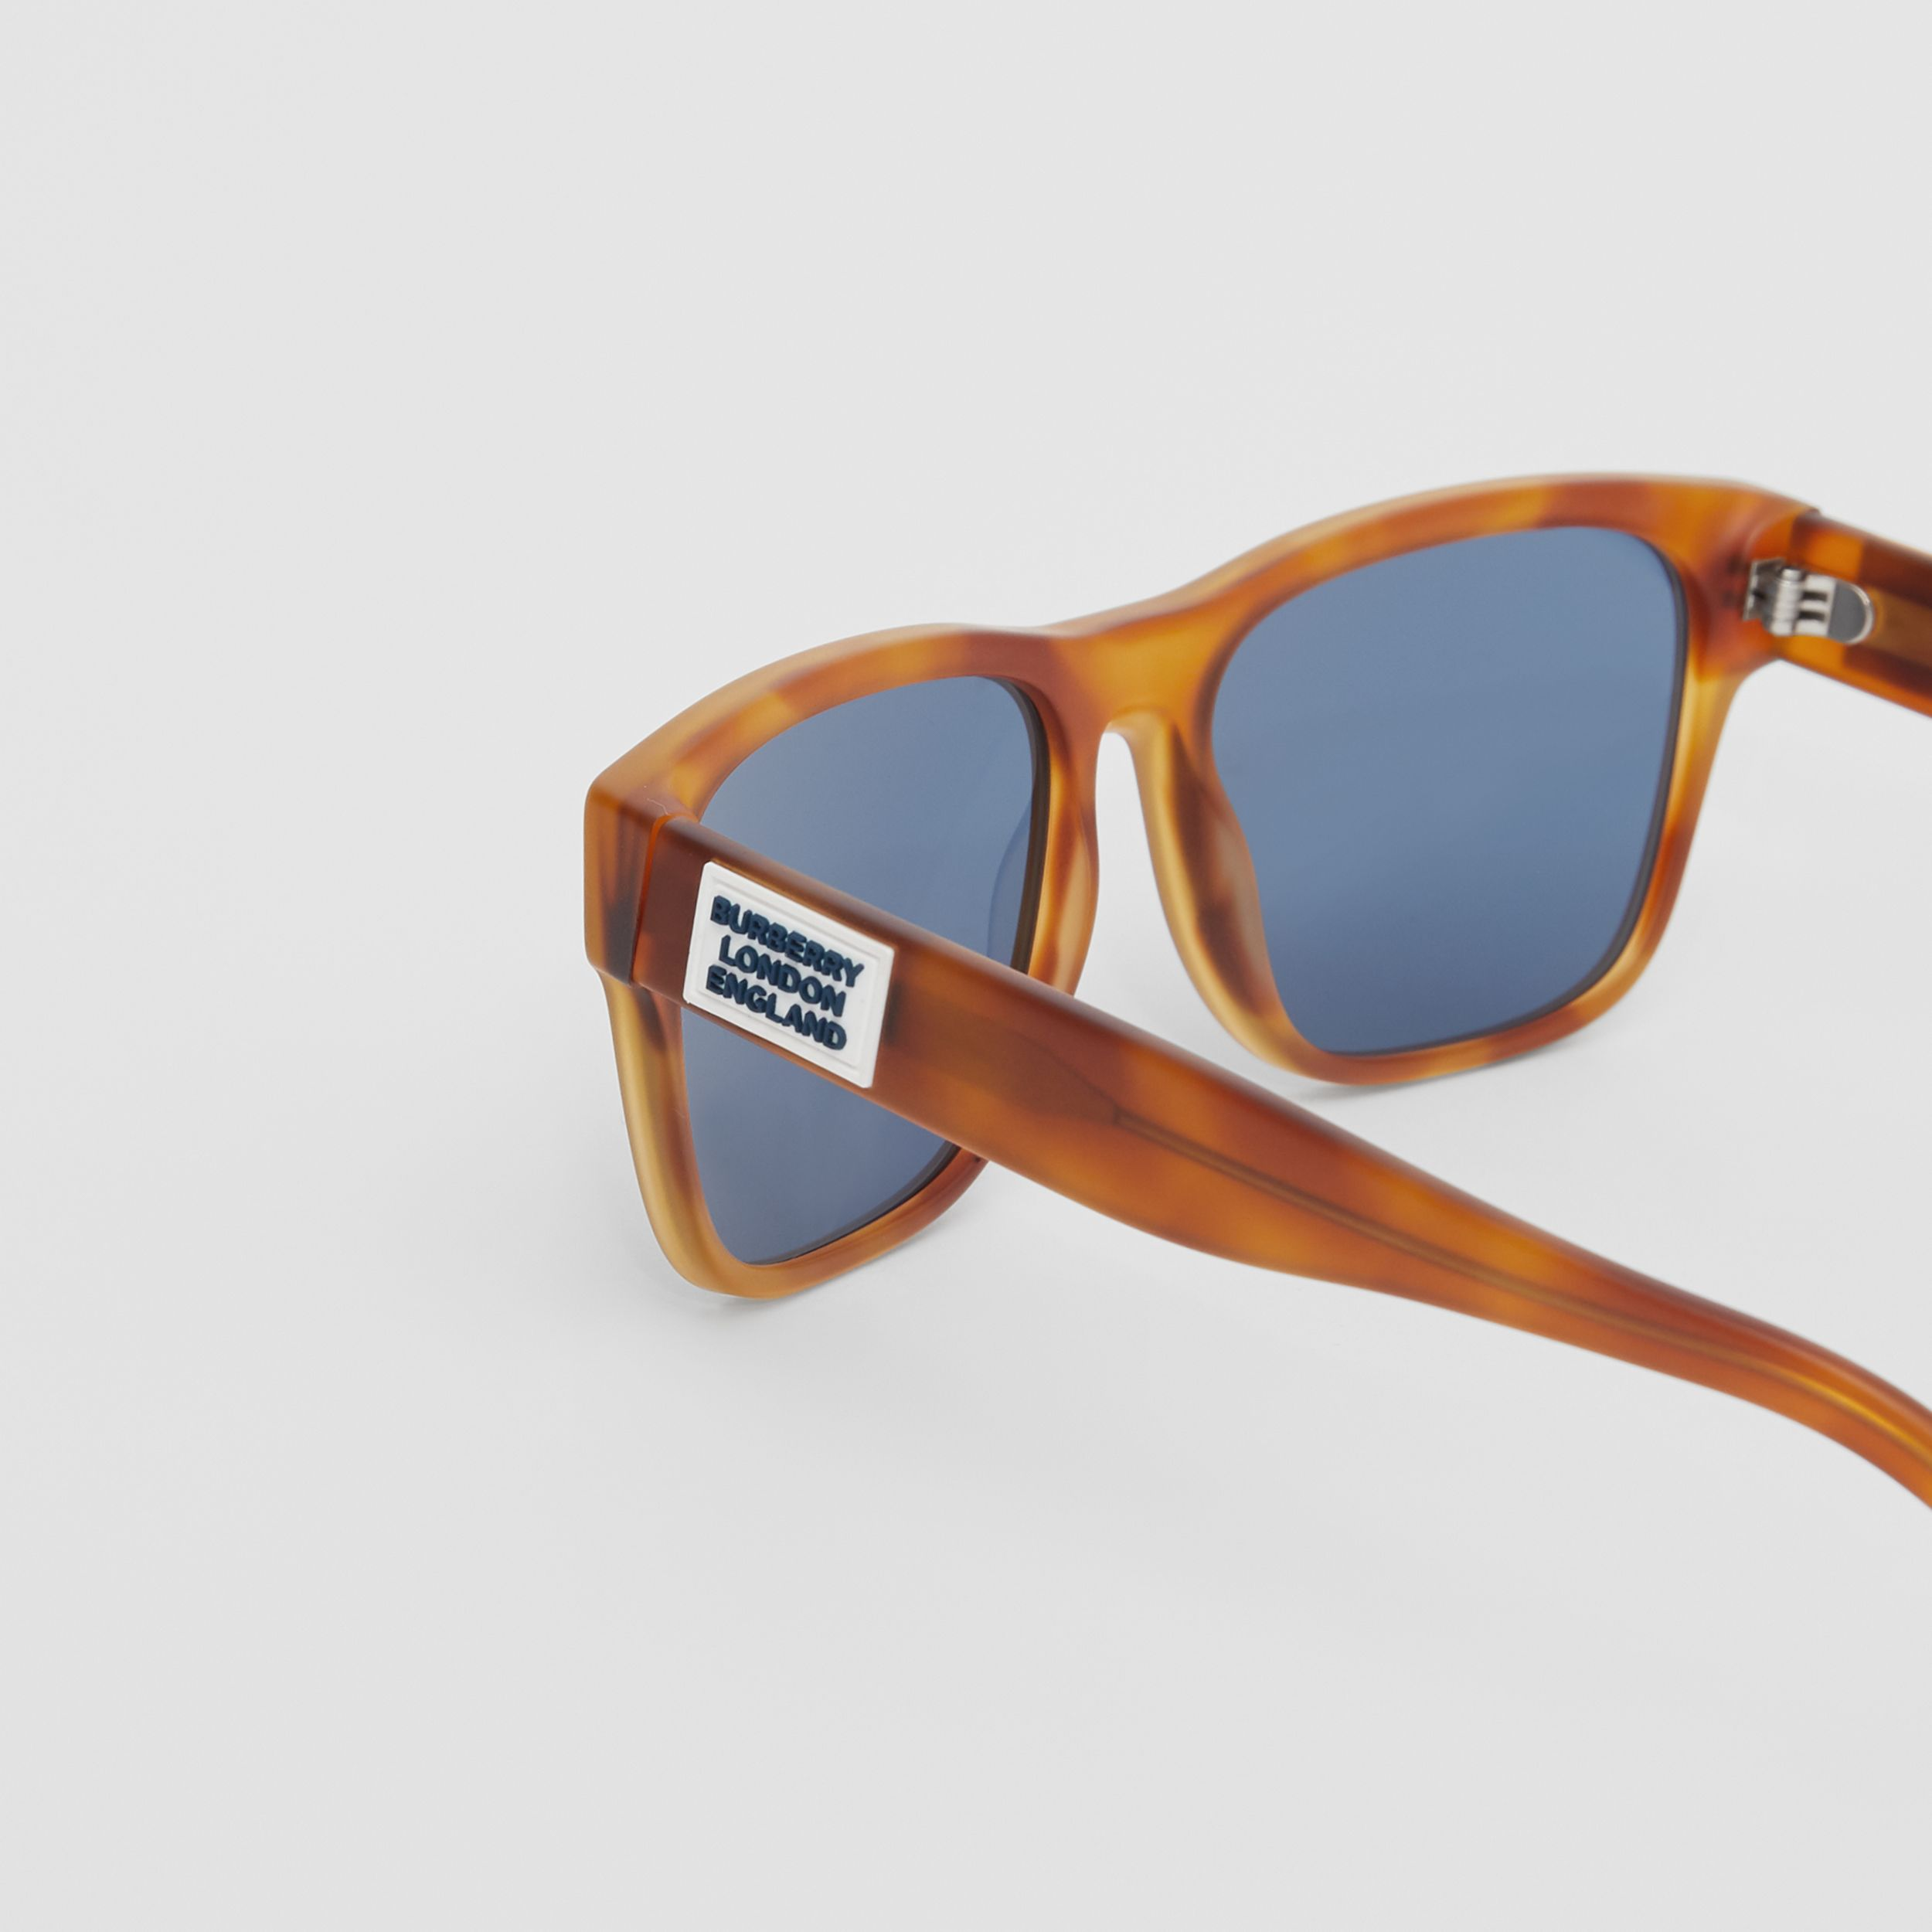 Logo Appliqué Square Frame Sunglasses in Tortoise Amber - Men | Burberry United Kingdom - 2